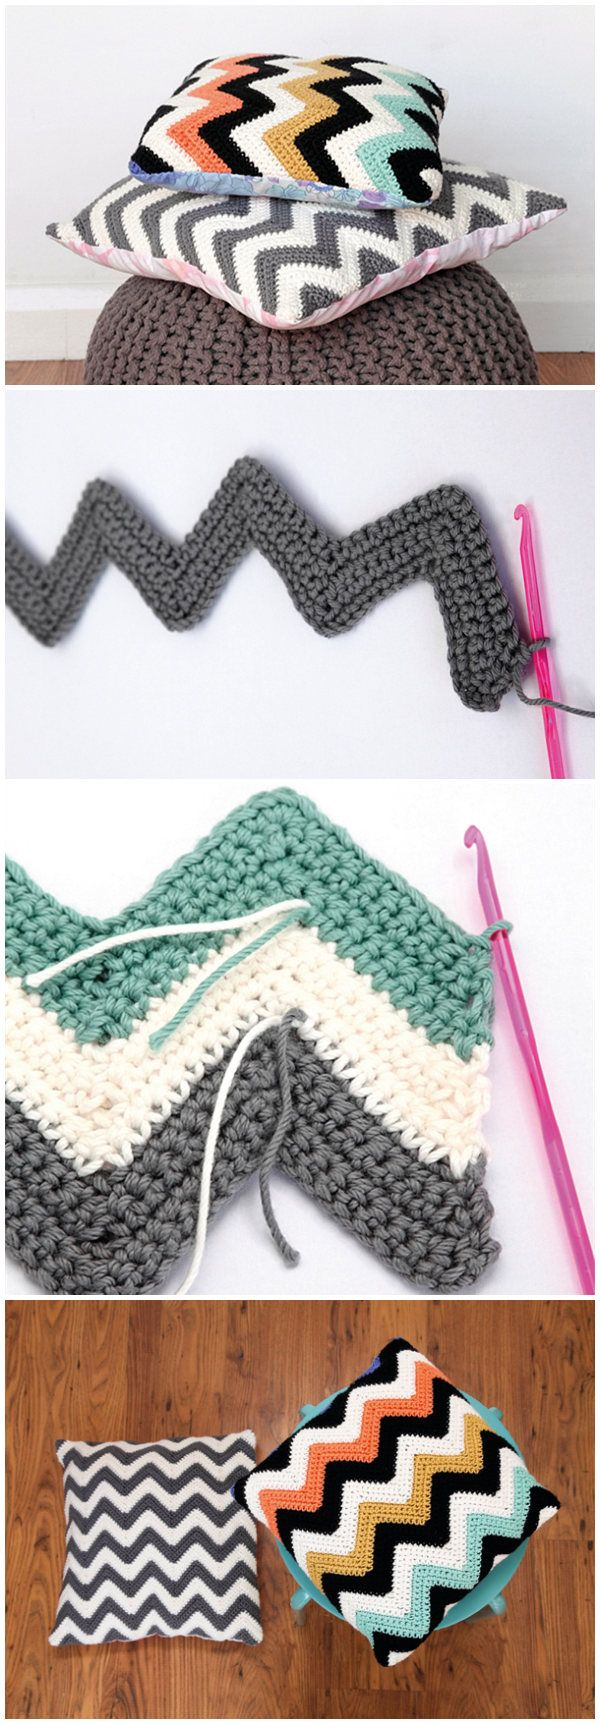 How To Crochet Chevron Cushions | Crochet | Pinterest | Lana